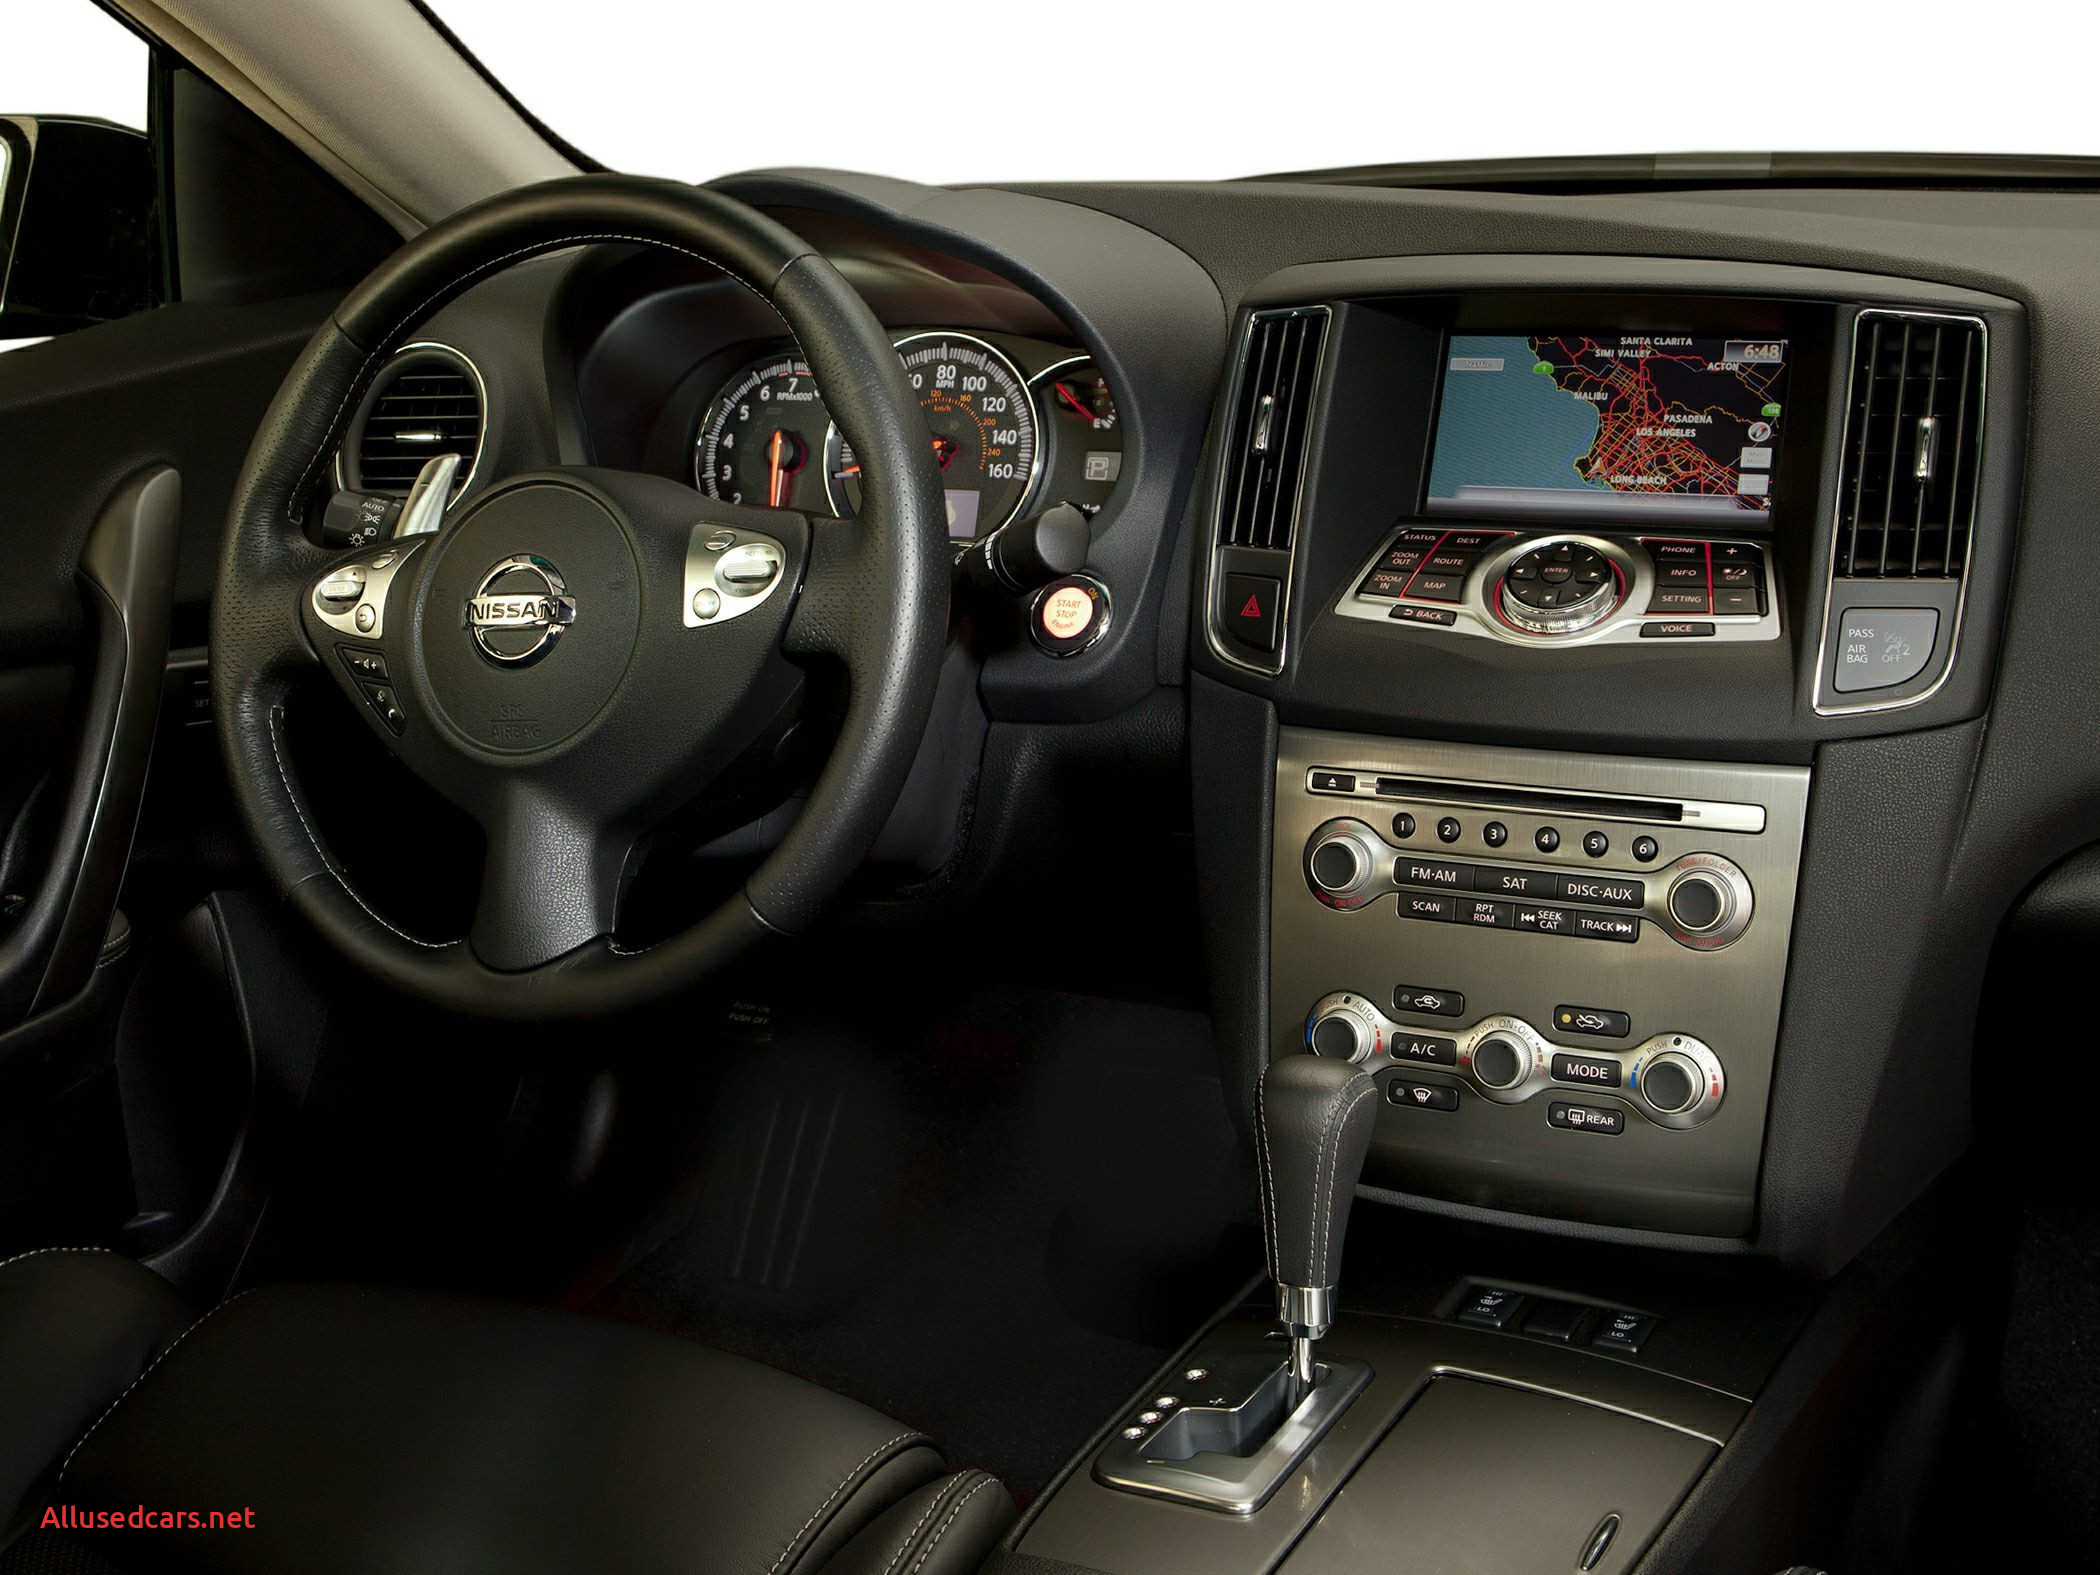 2013 Nissan Maxima Luxury 62 Best My Rides Images